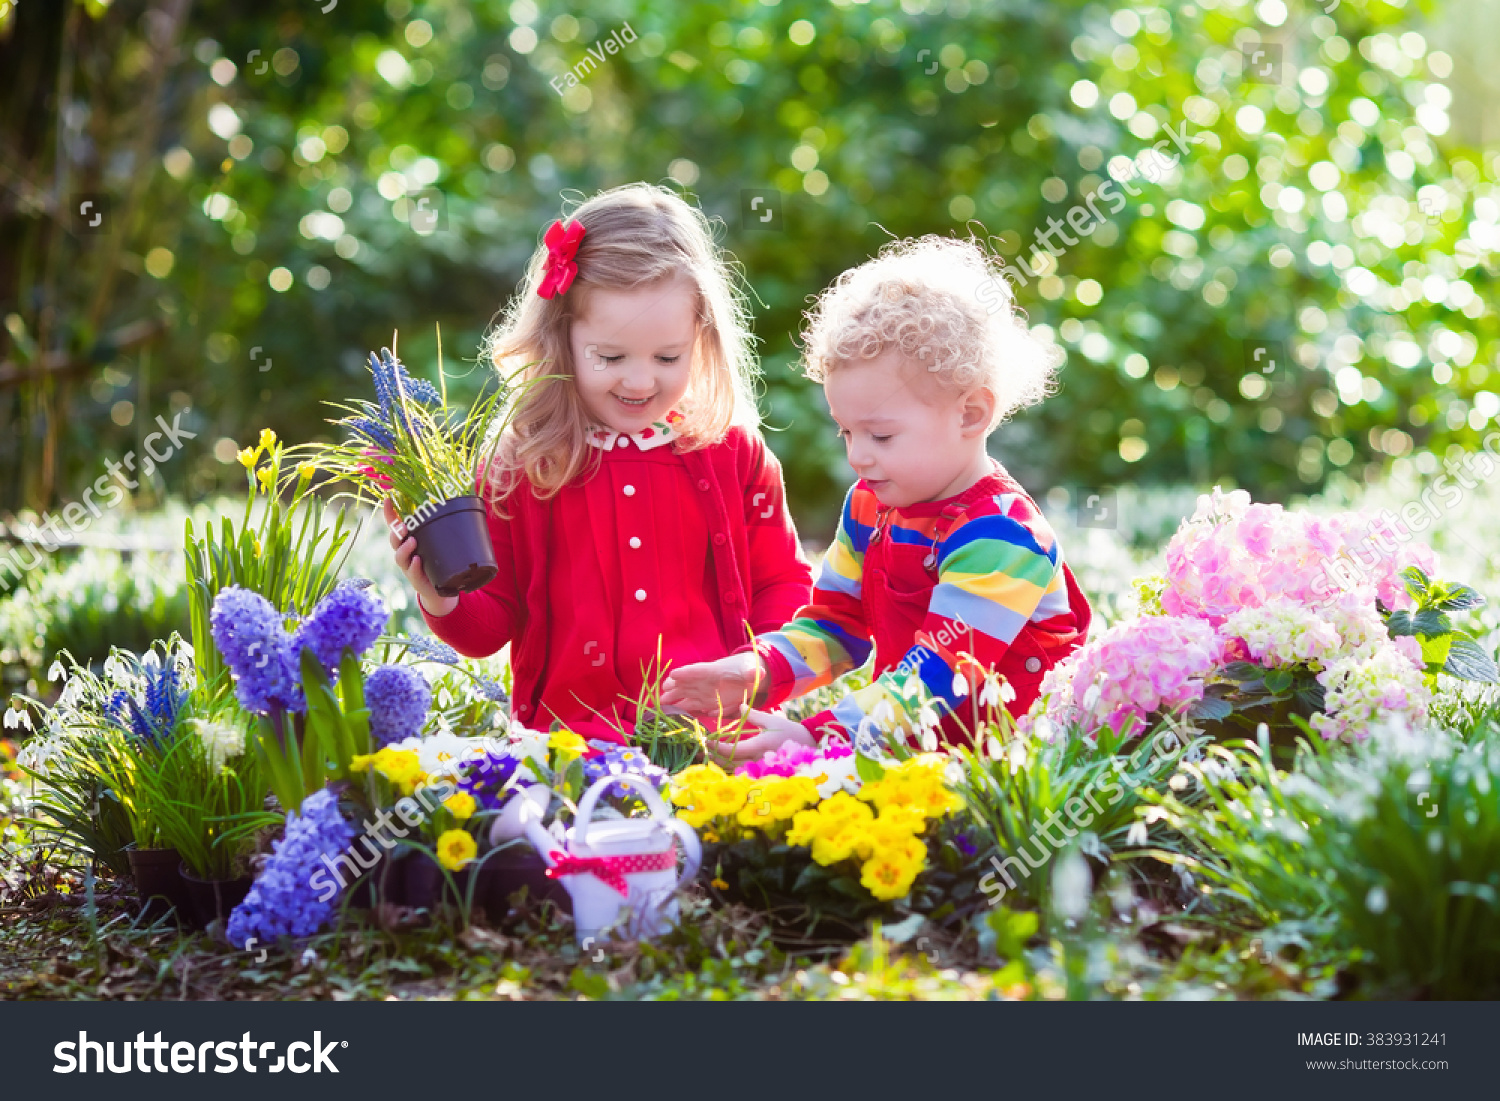 Royalty Free Children Planting Spring Flowers In 383931241 Stock